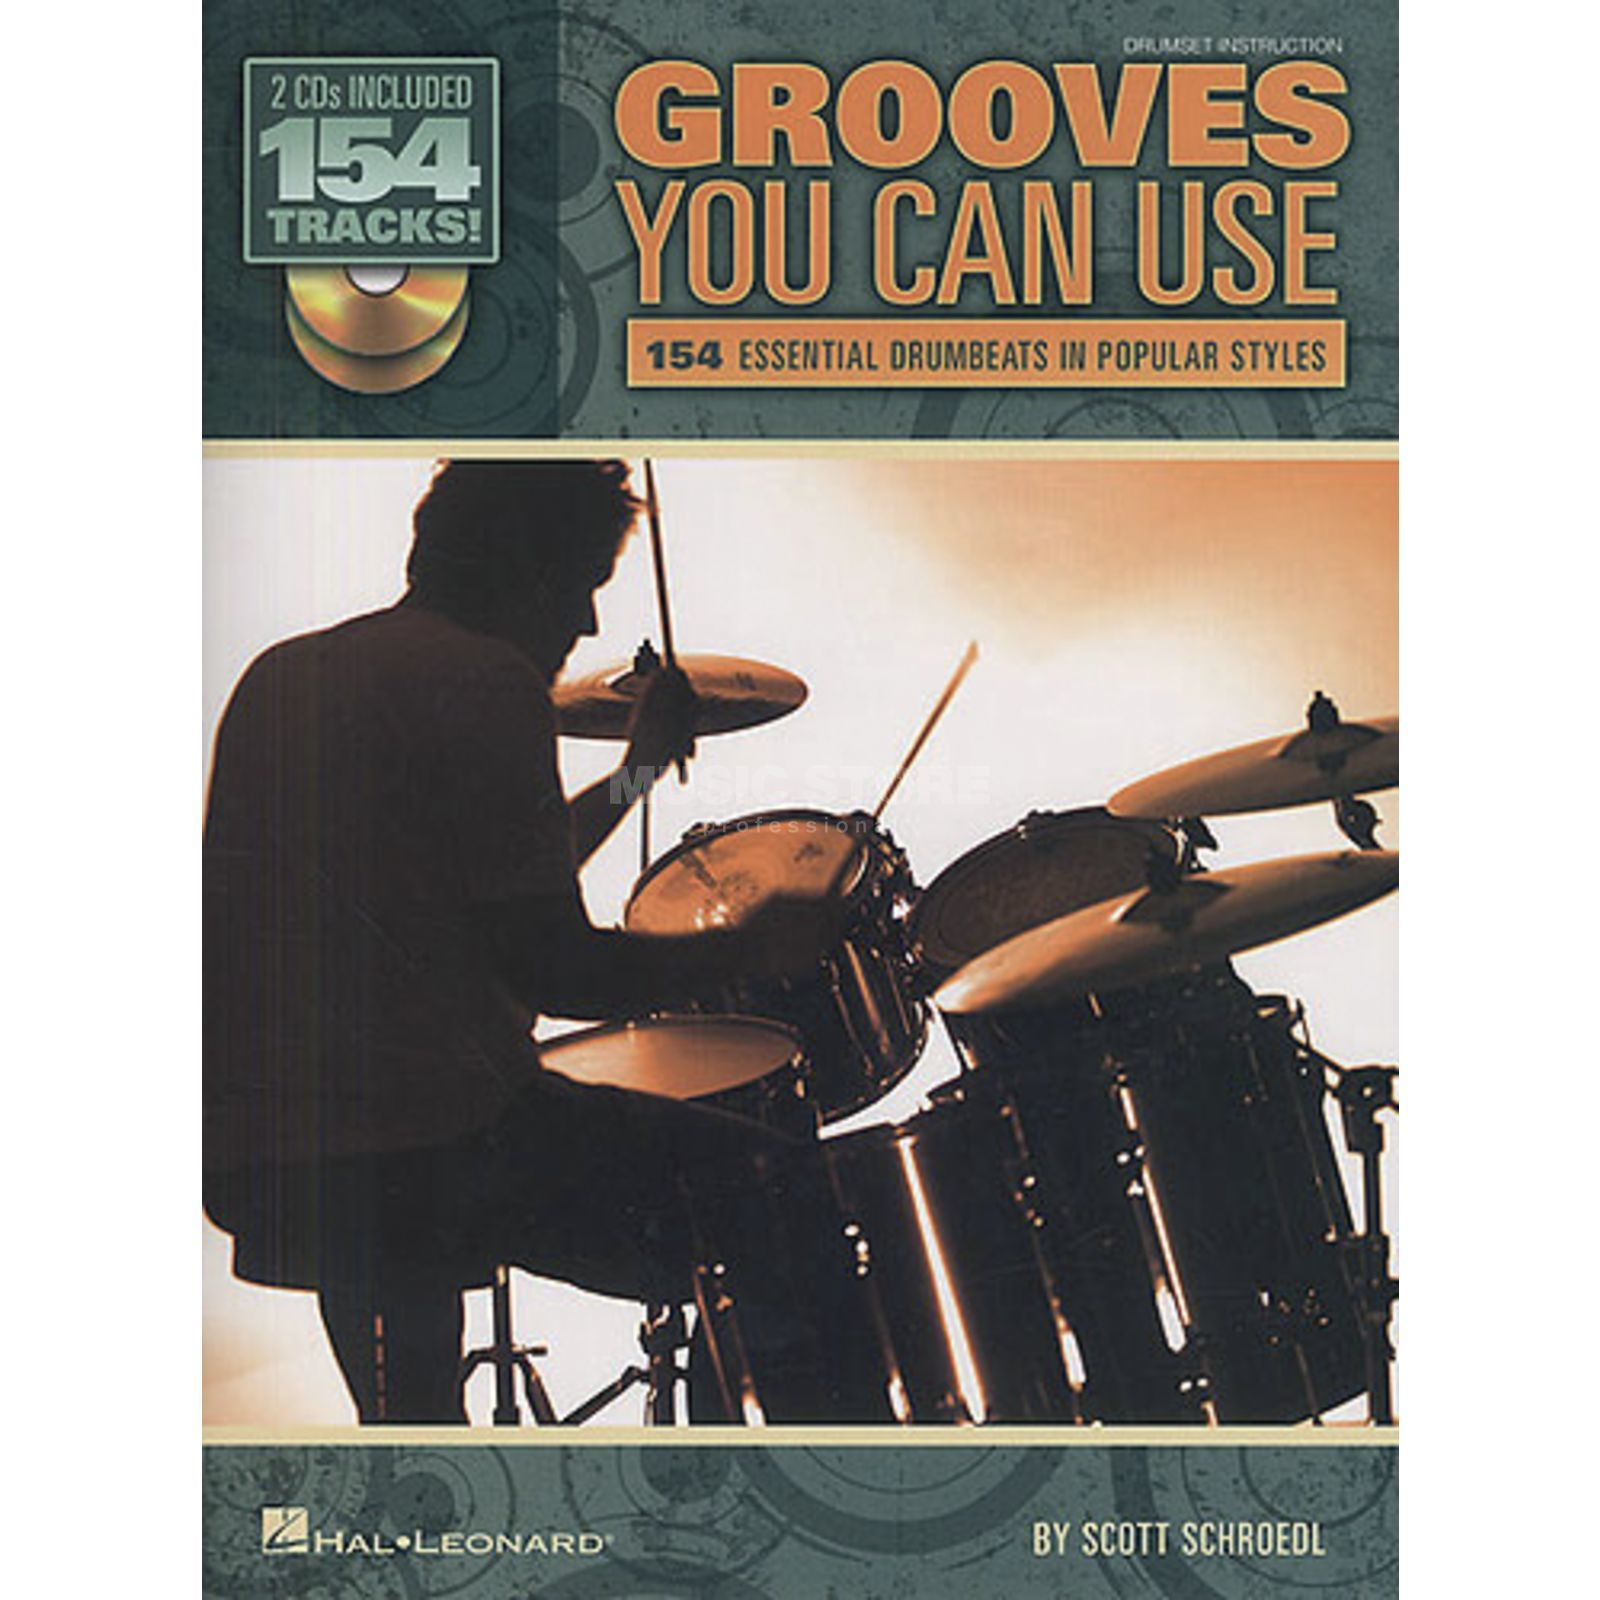 Hal Leonard Grooves You Can Use (drums) Lehrbuch, 2 CDs Produktbild